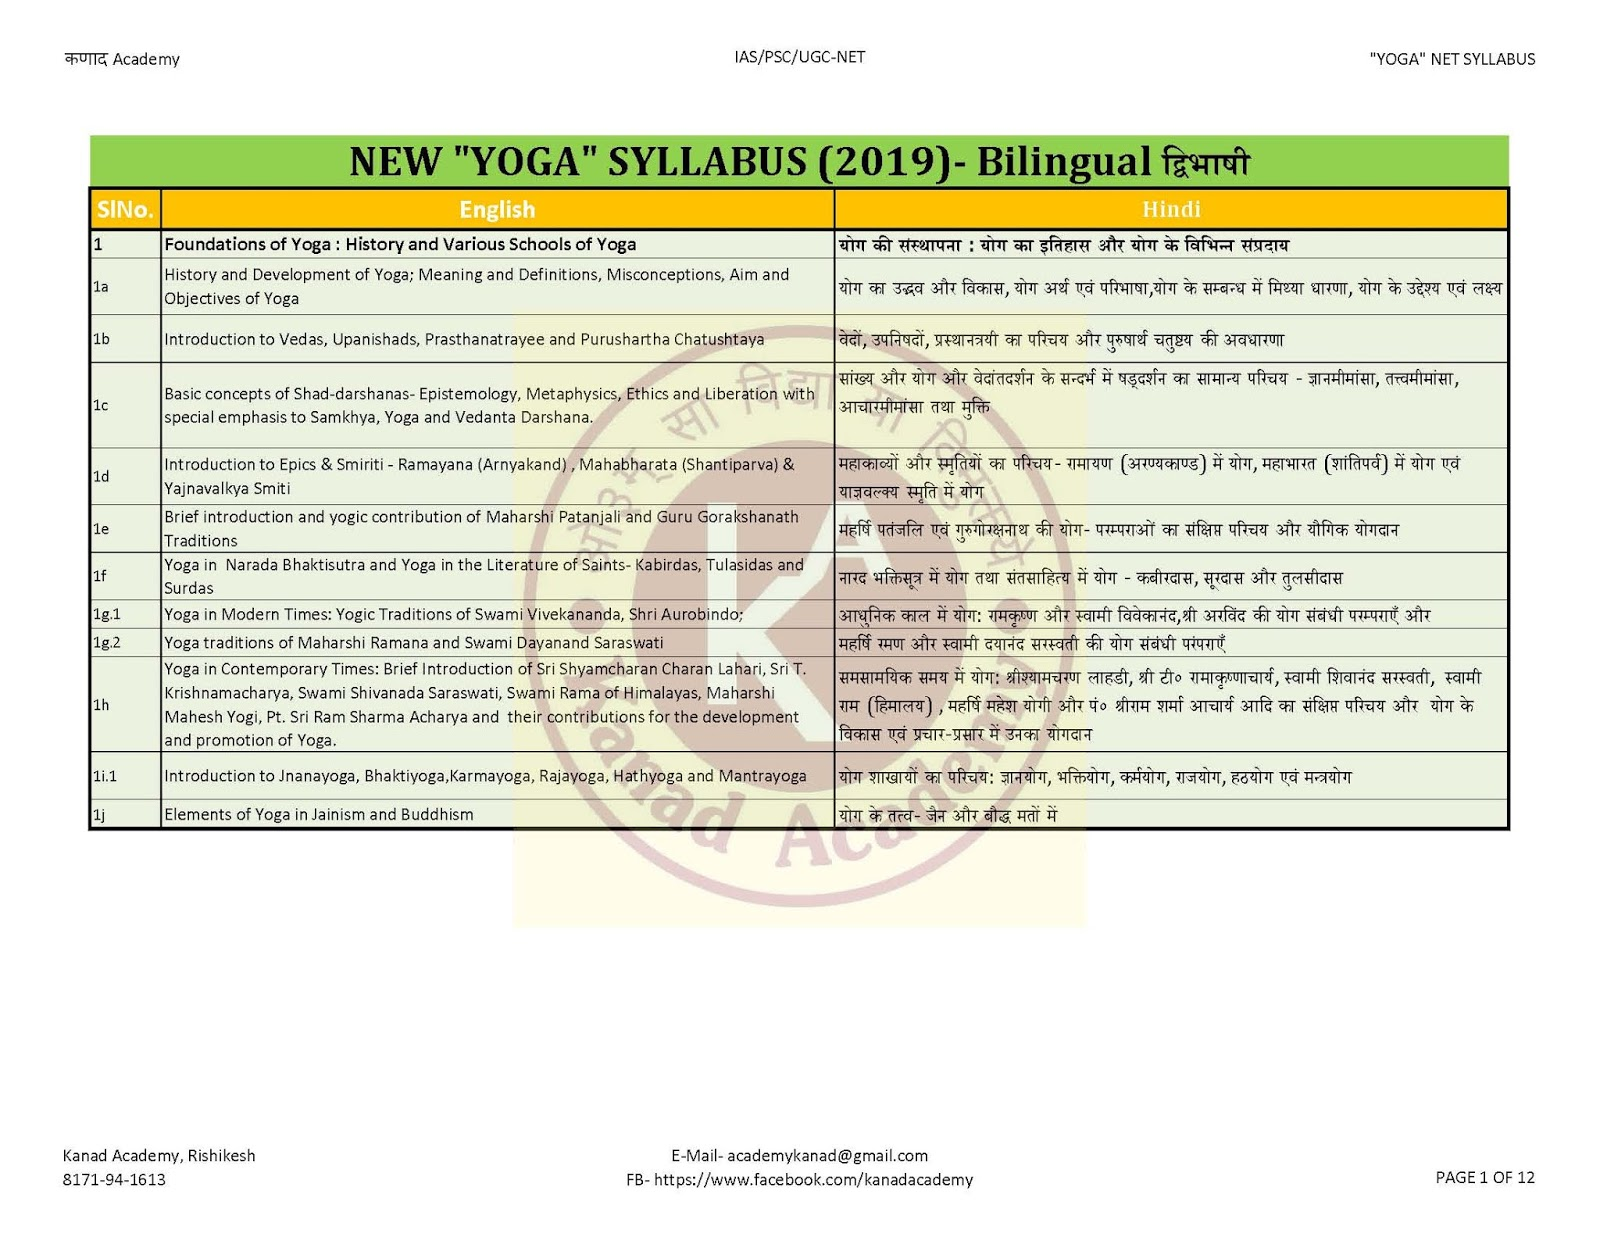 New UGC NET YOGA SYLLABUS (From 2019) IN HINDI/ English